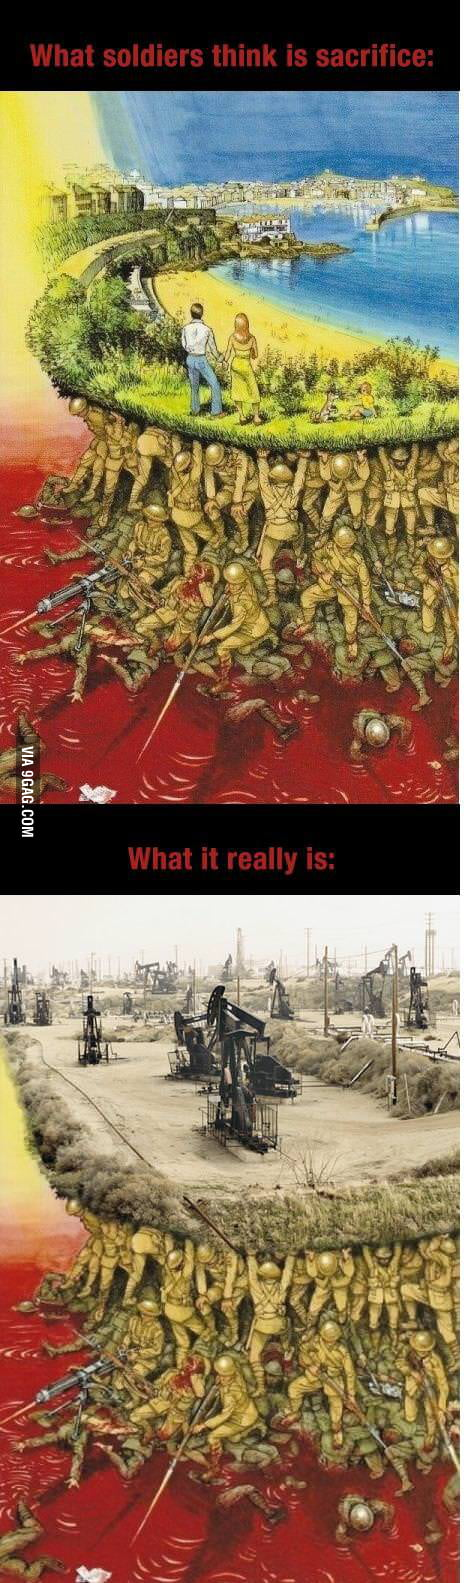 What soldiers think is sacrifice